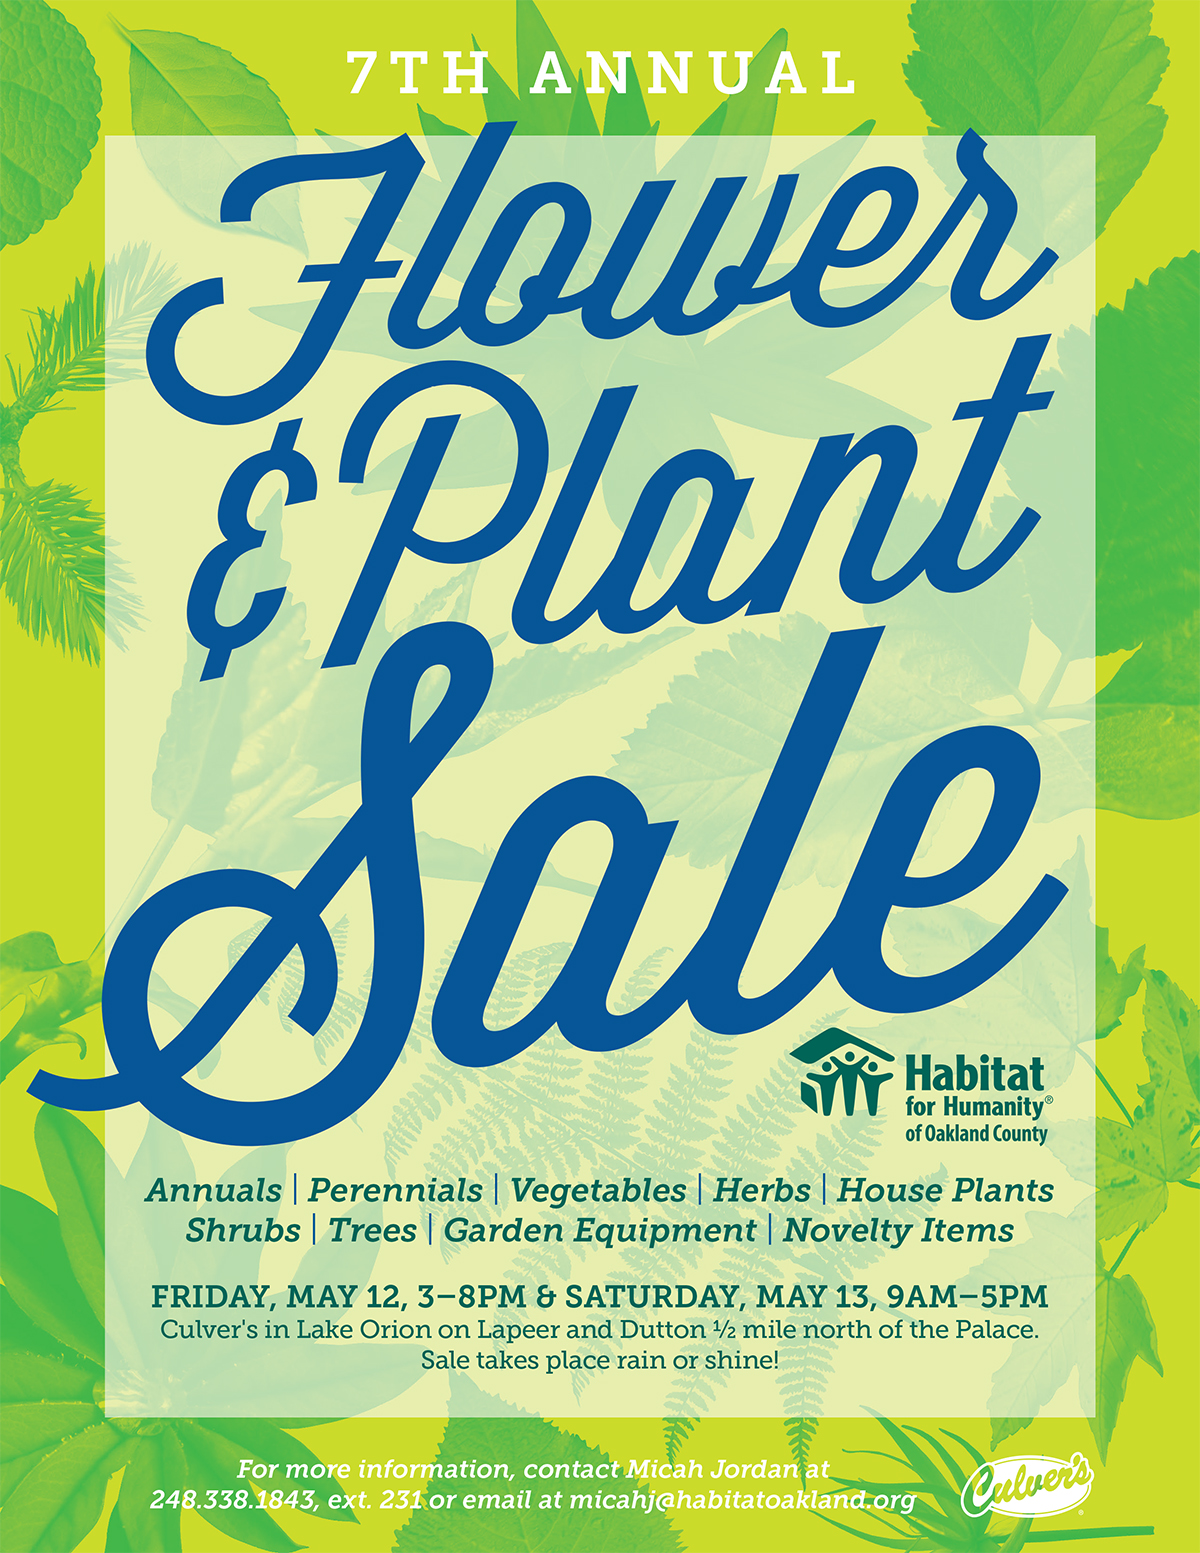 7th Annual Flower & Plant Sale